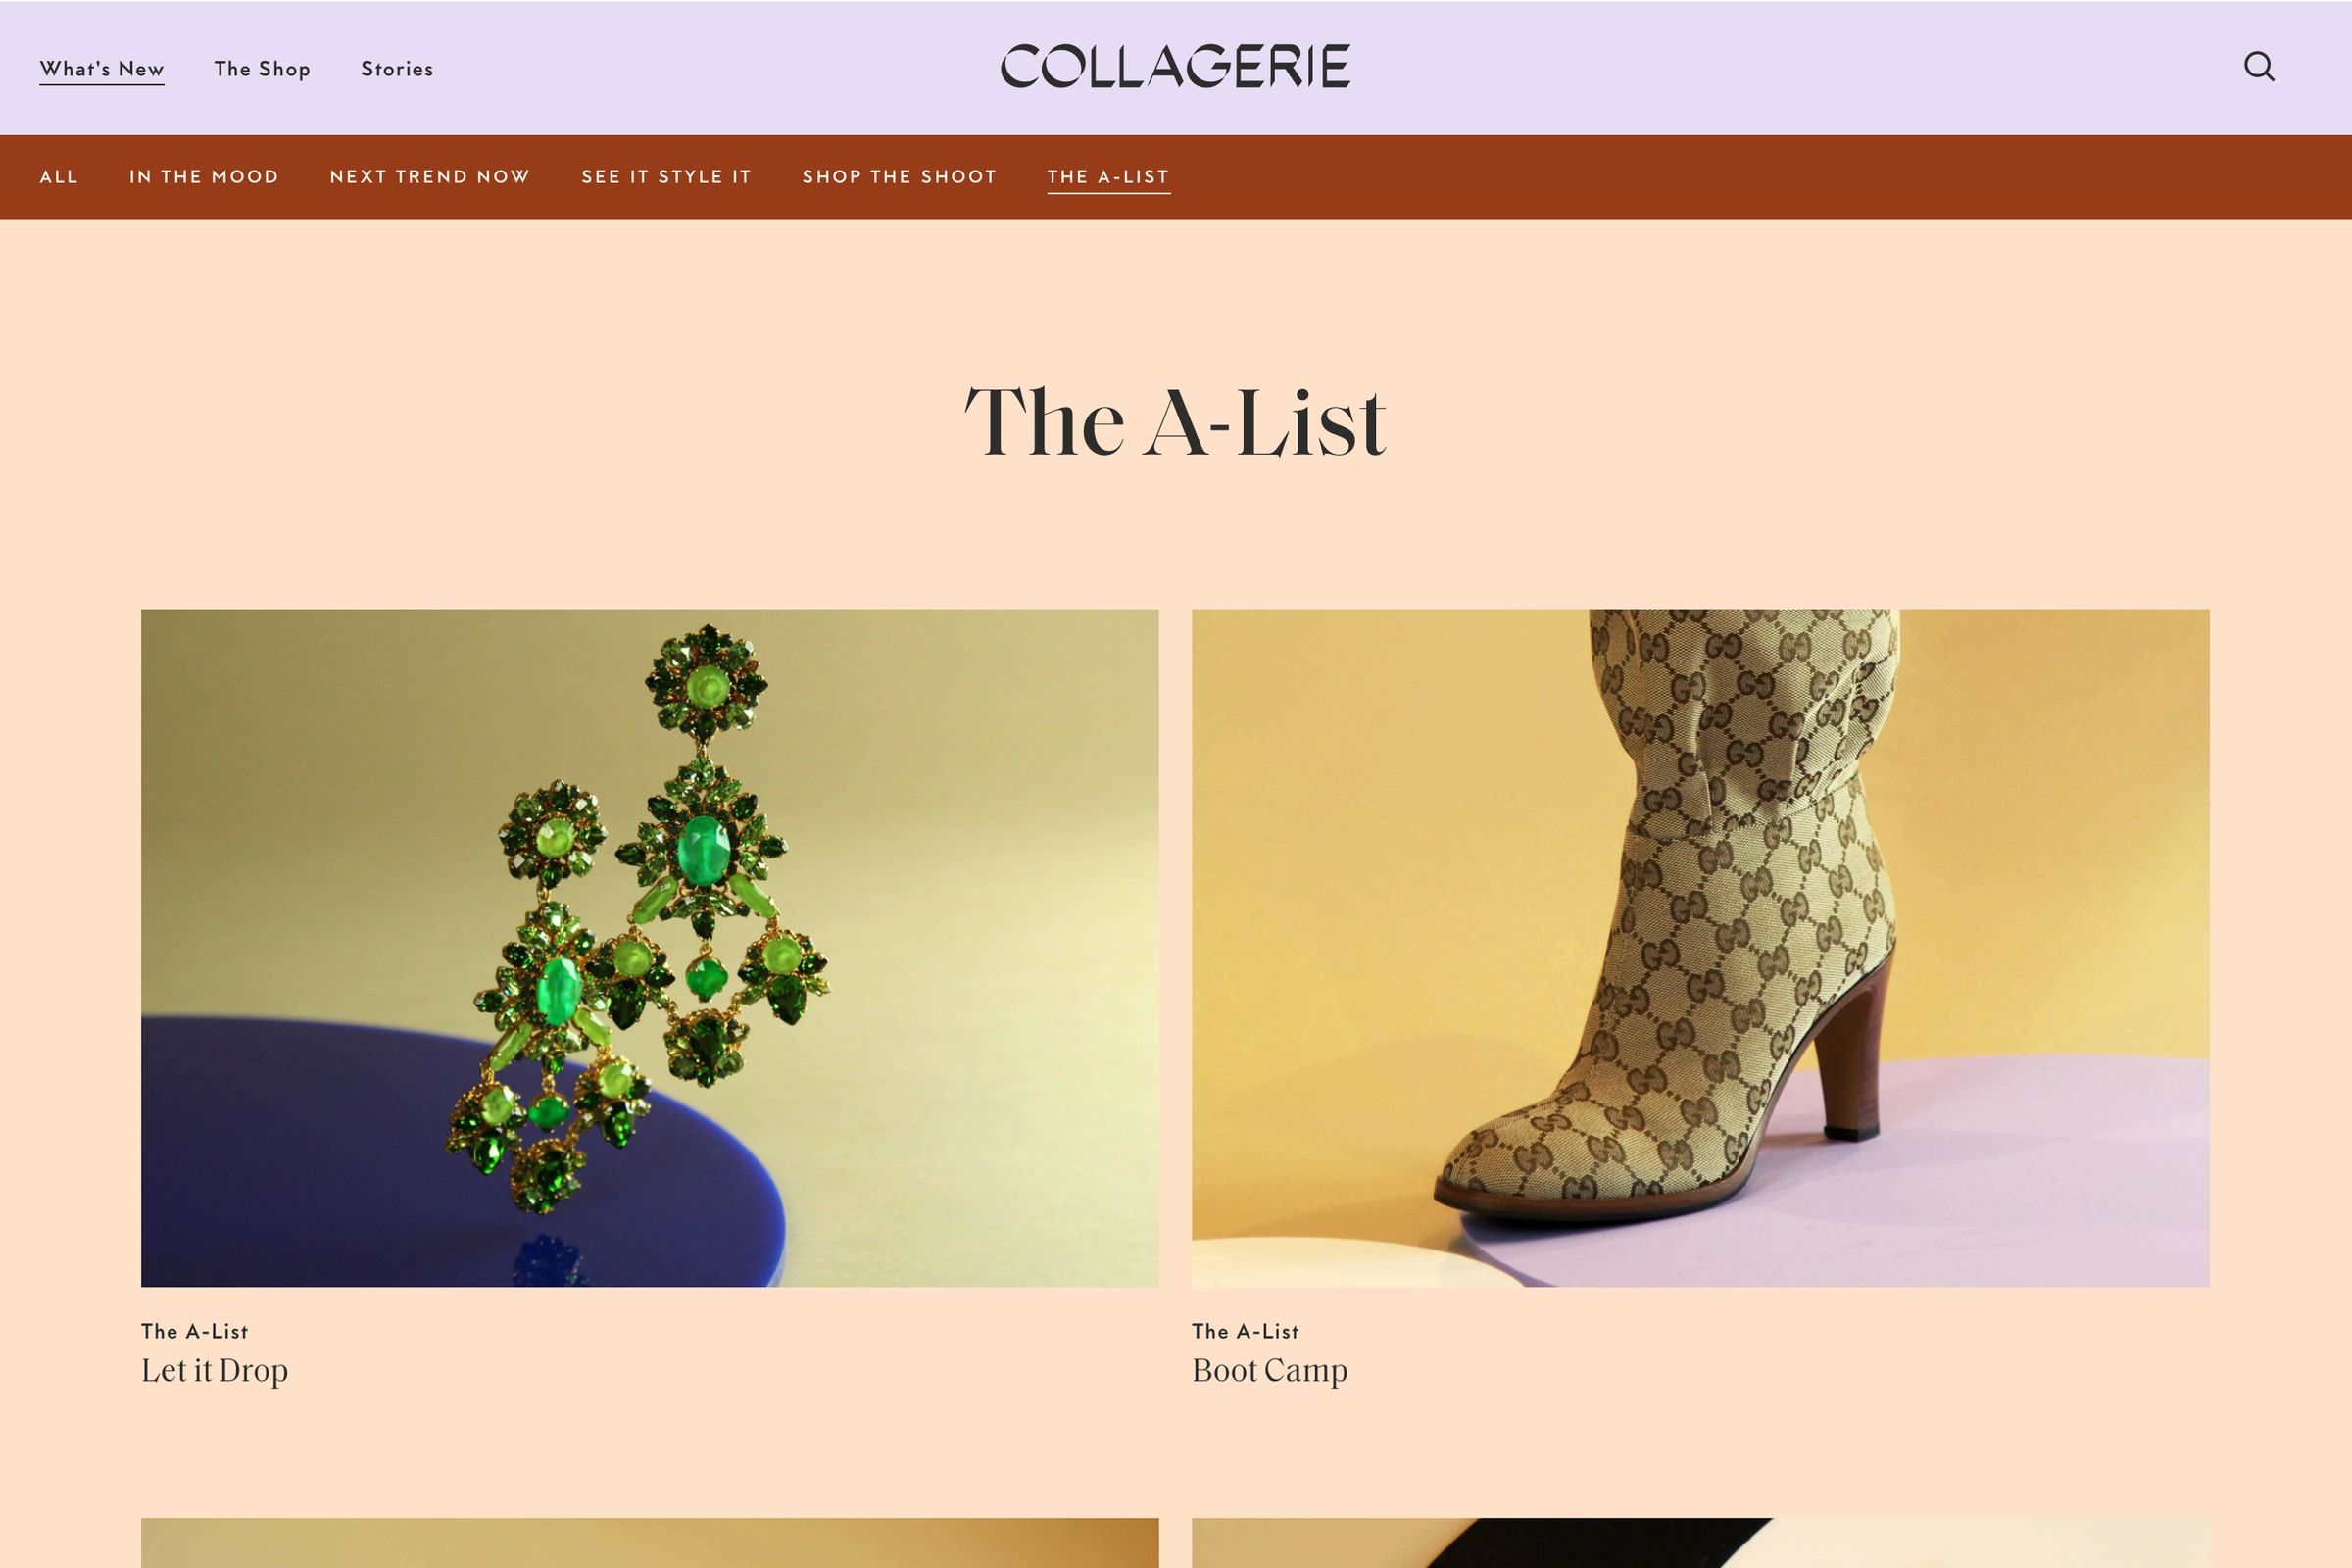 Collagerie website design The A-List